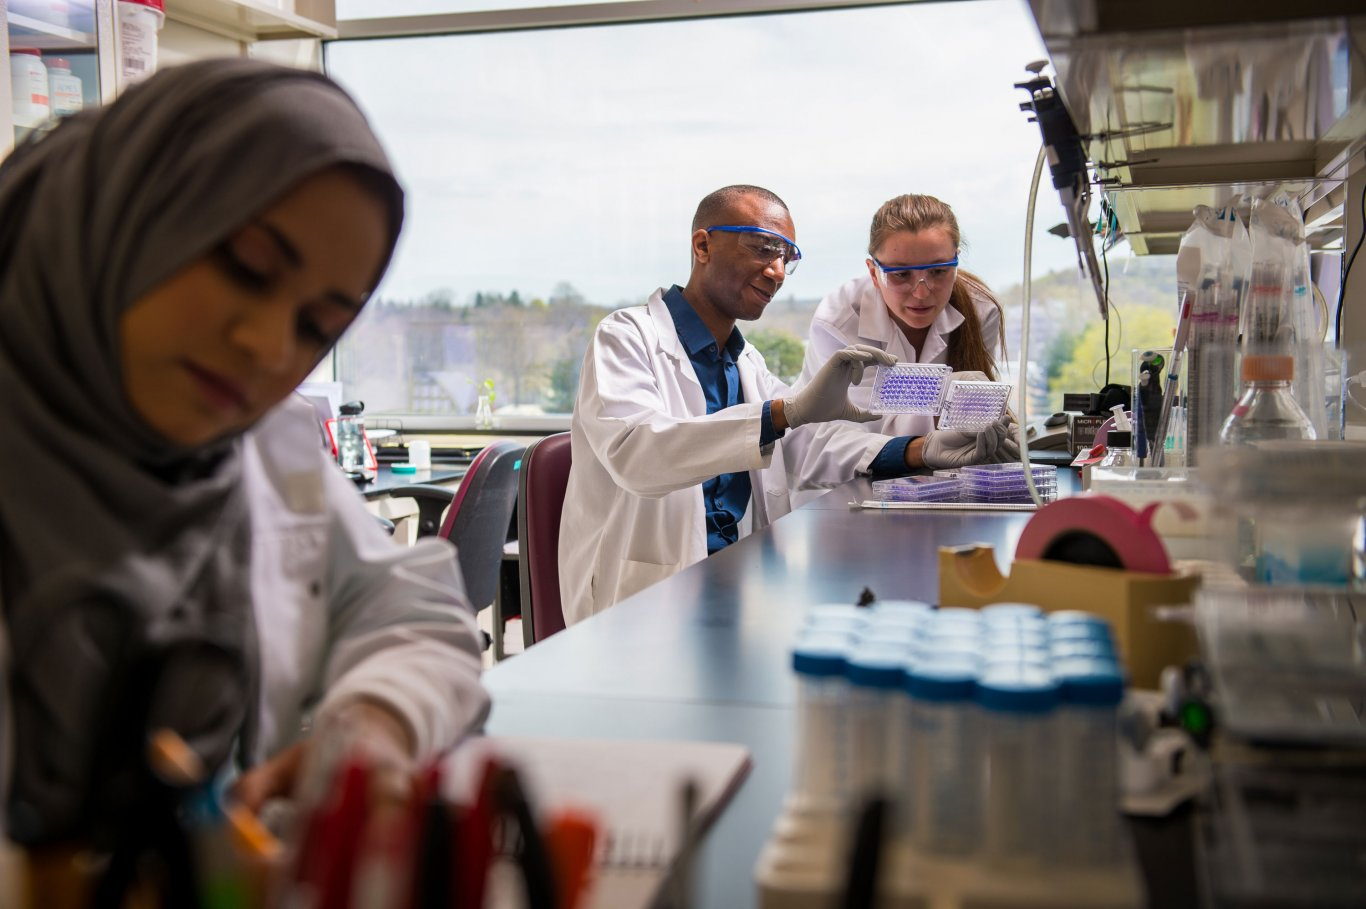 Undergraduate students work in a laboratory at the Cancer Research Center of the Health Sciences Campus.